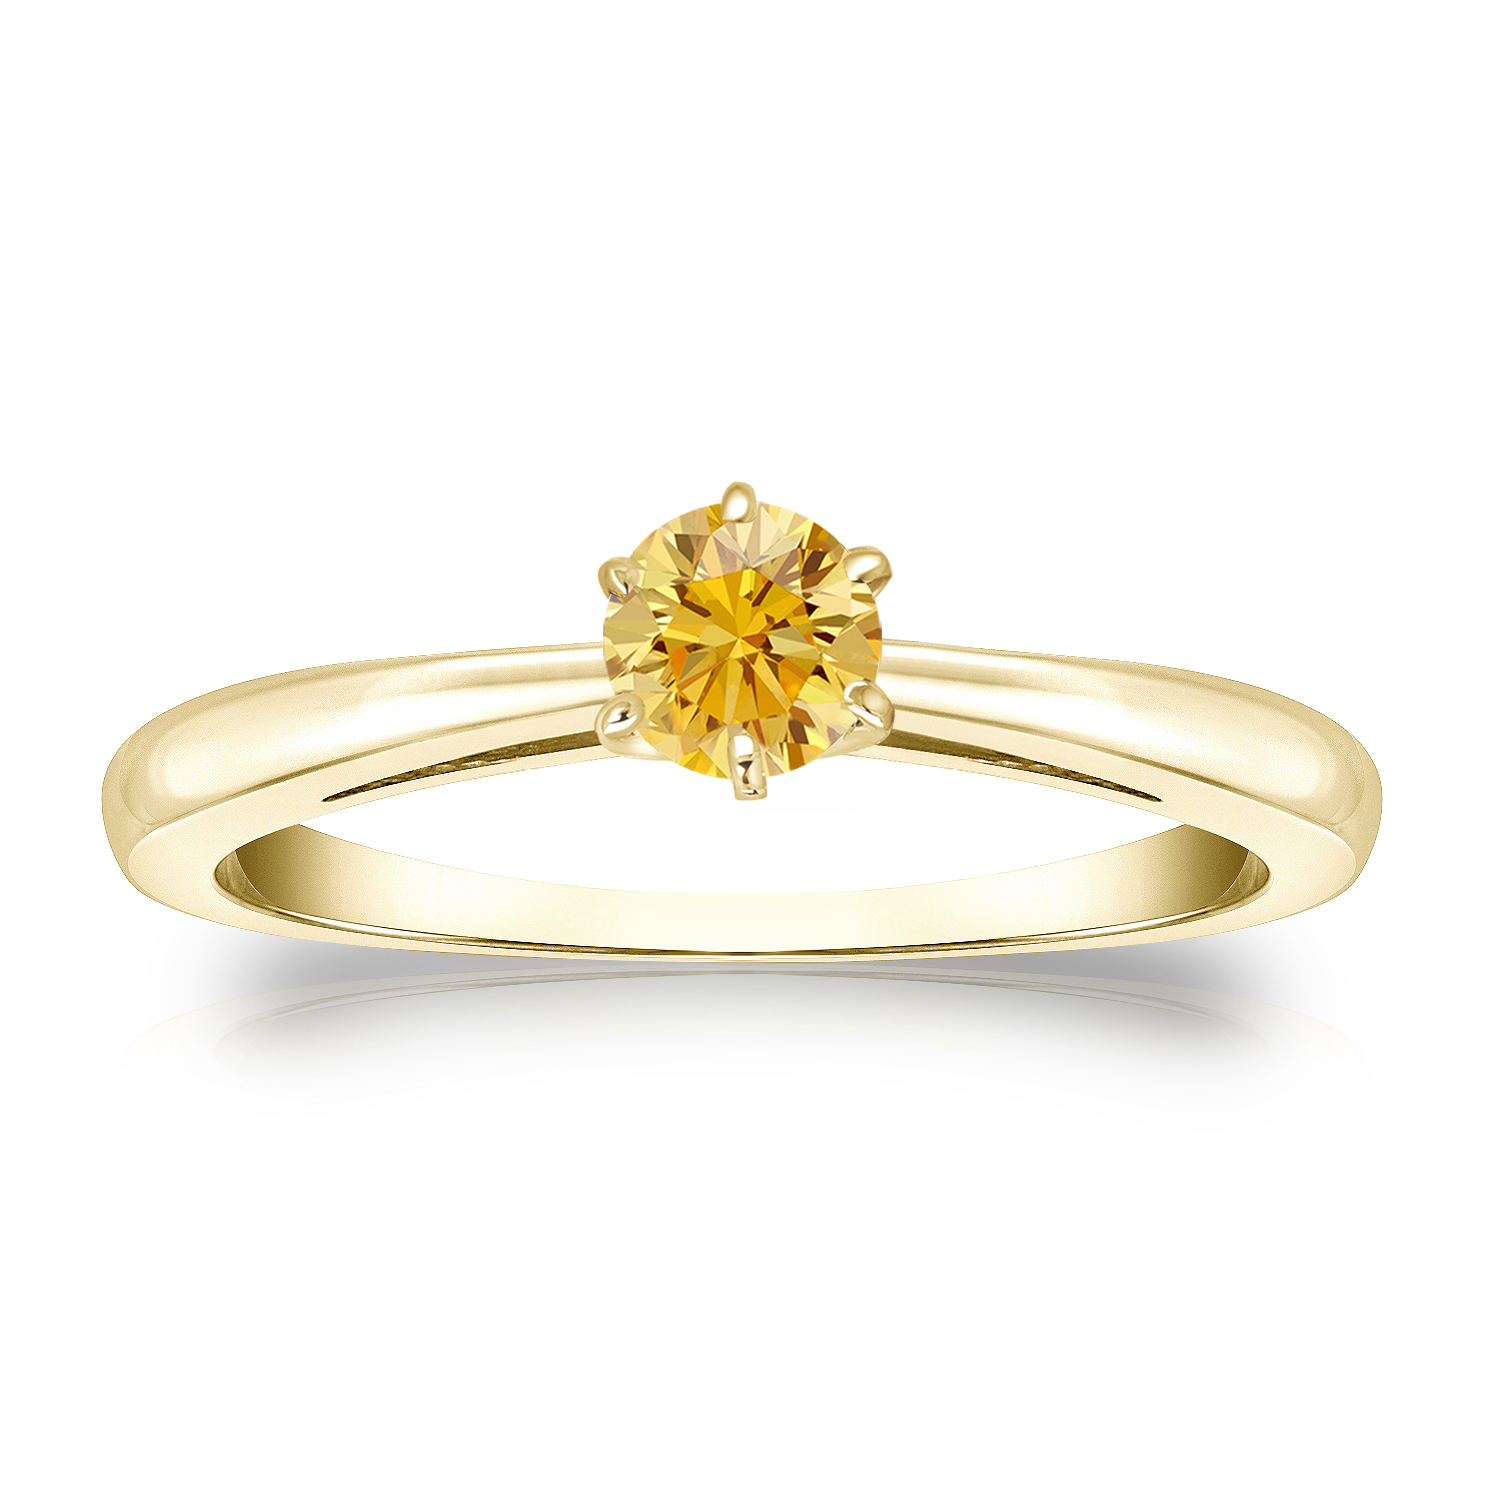 1/4 CT YELLOW DIAMOND ENGAGEMENT RING 14K YELLOW GOLD